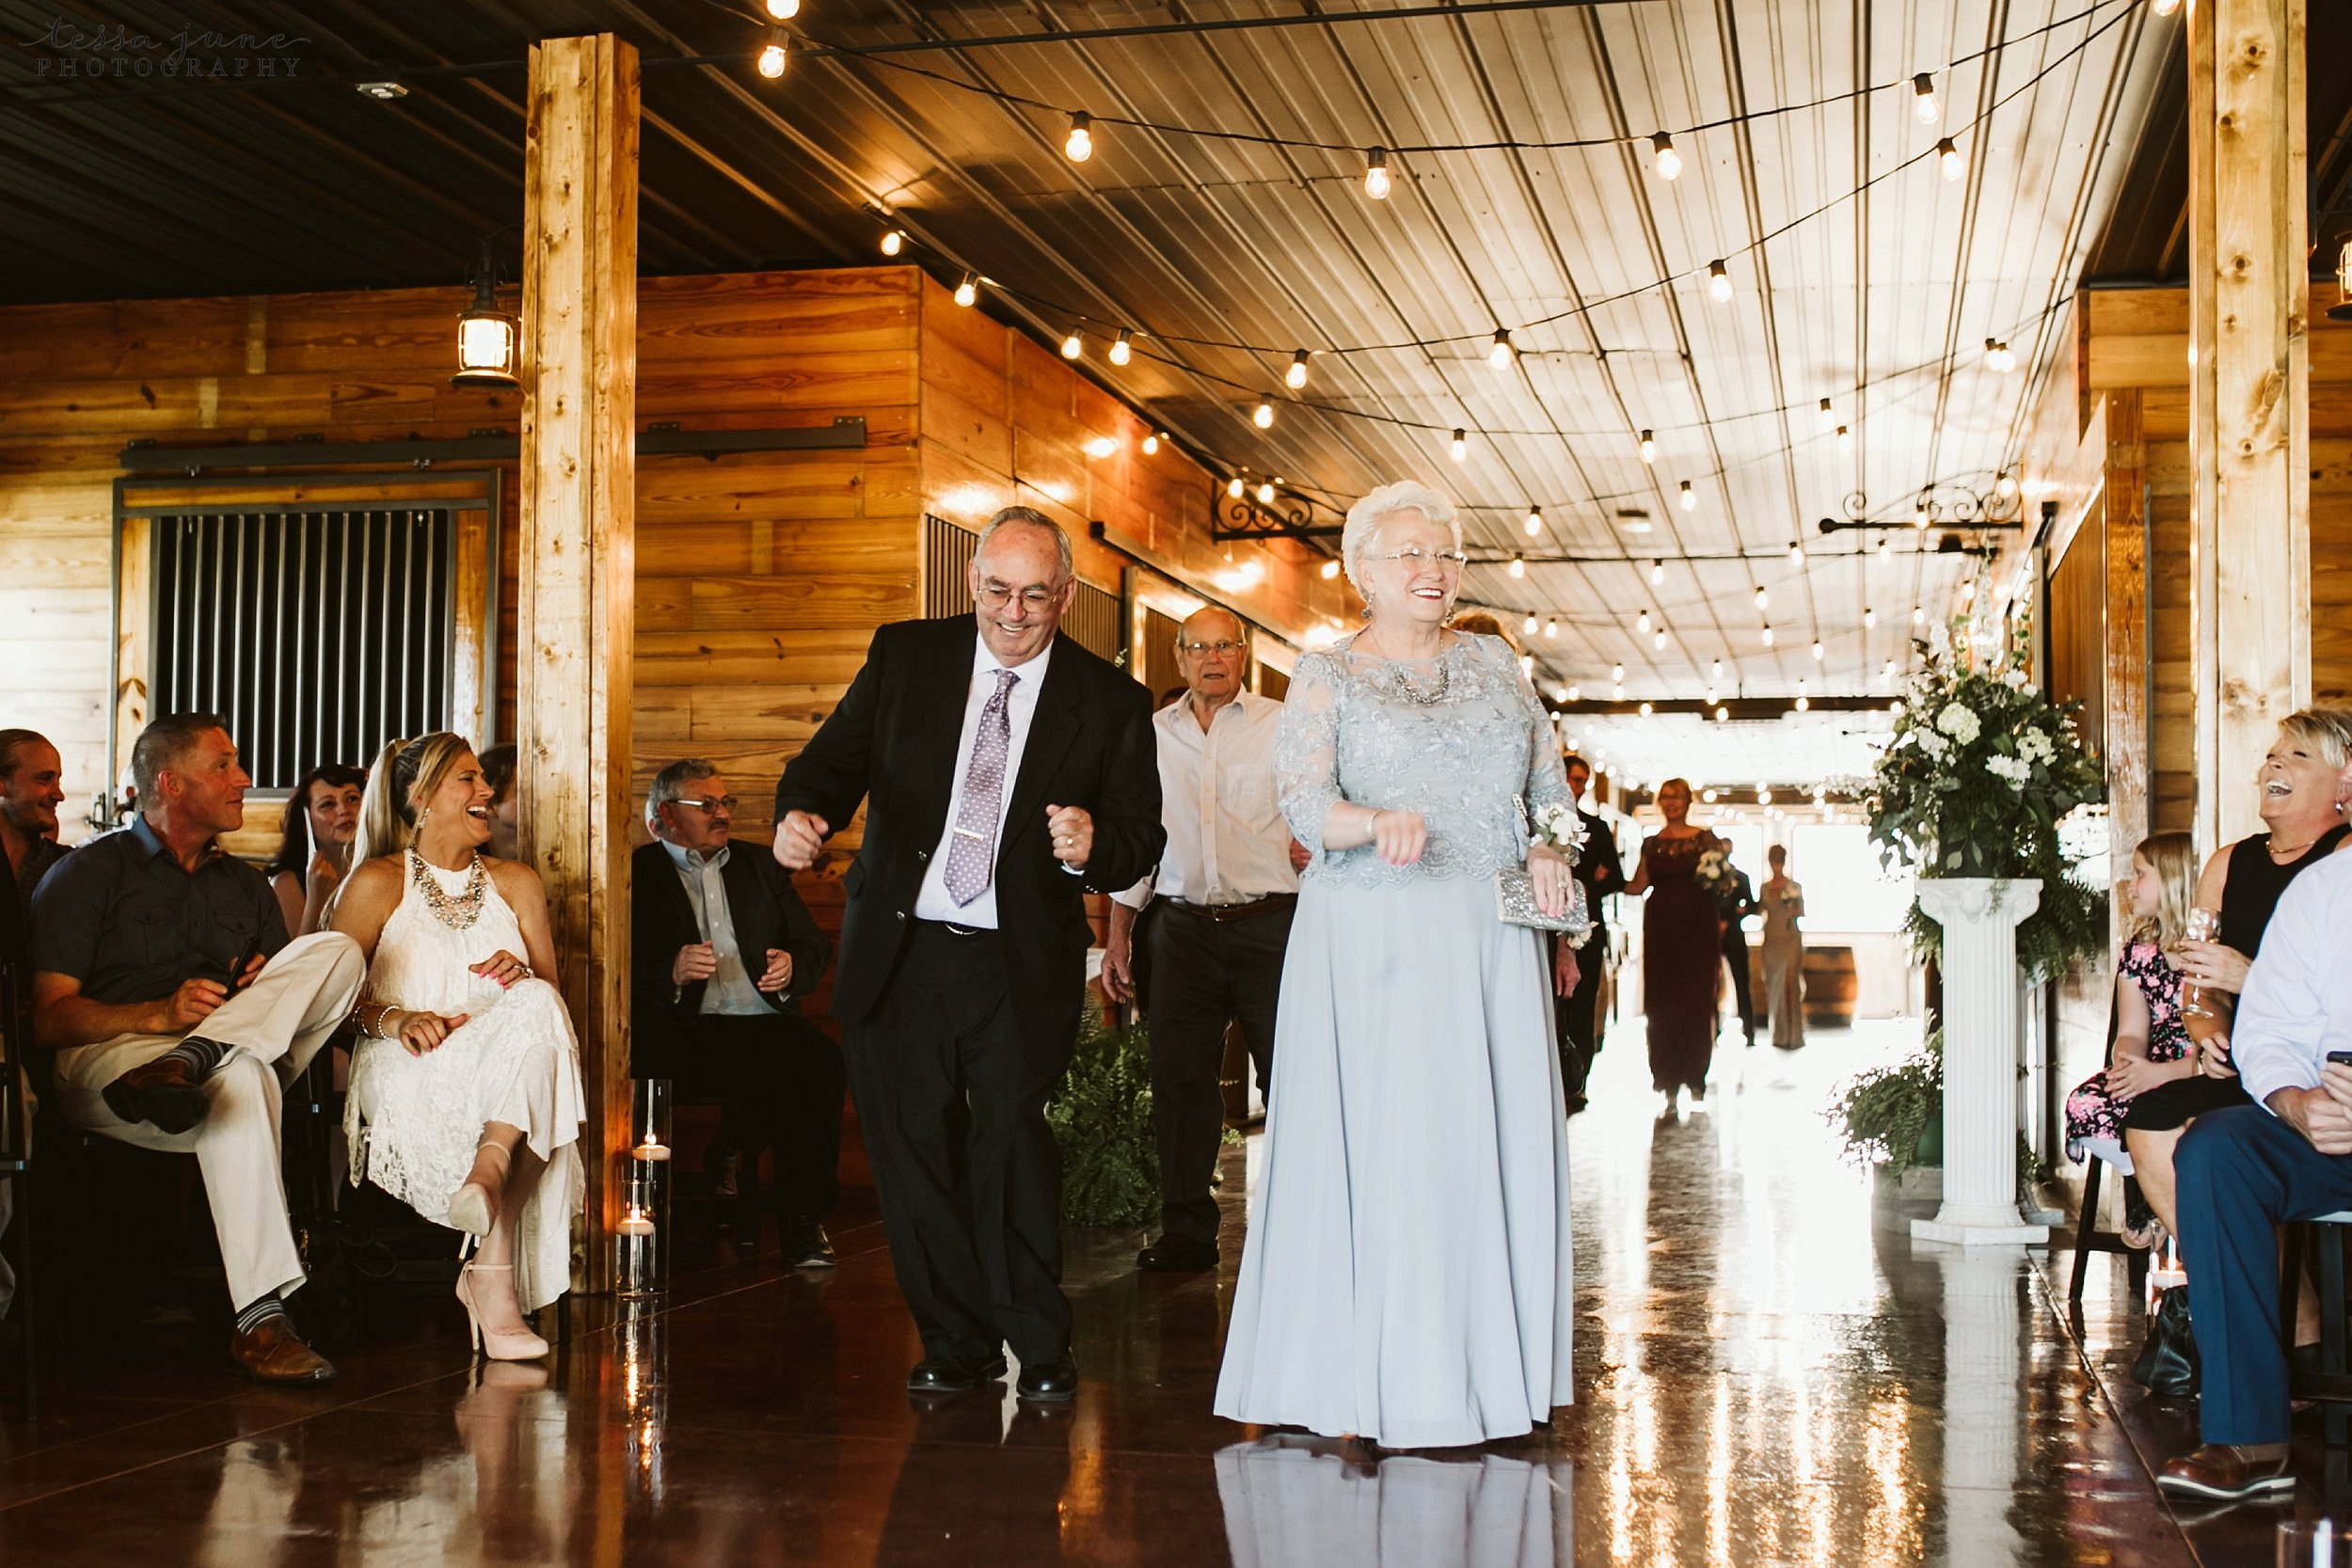 carlos-creek-winery-wedding-alexandria-minnesota-glam-elegant-floral-92.jpg